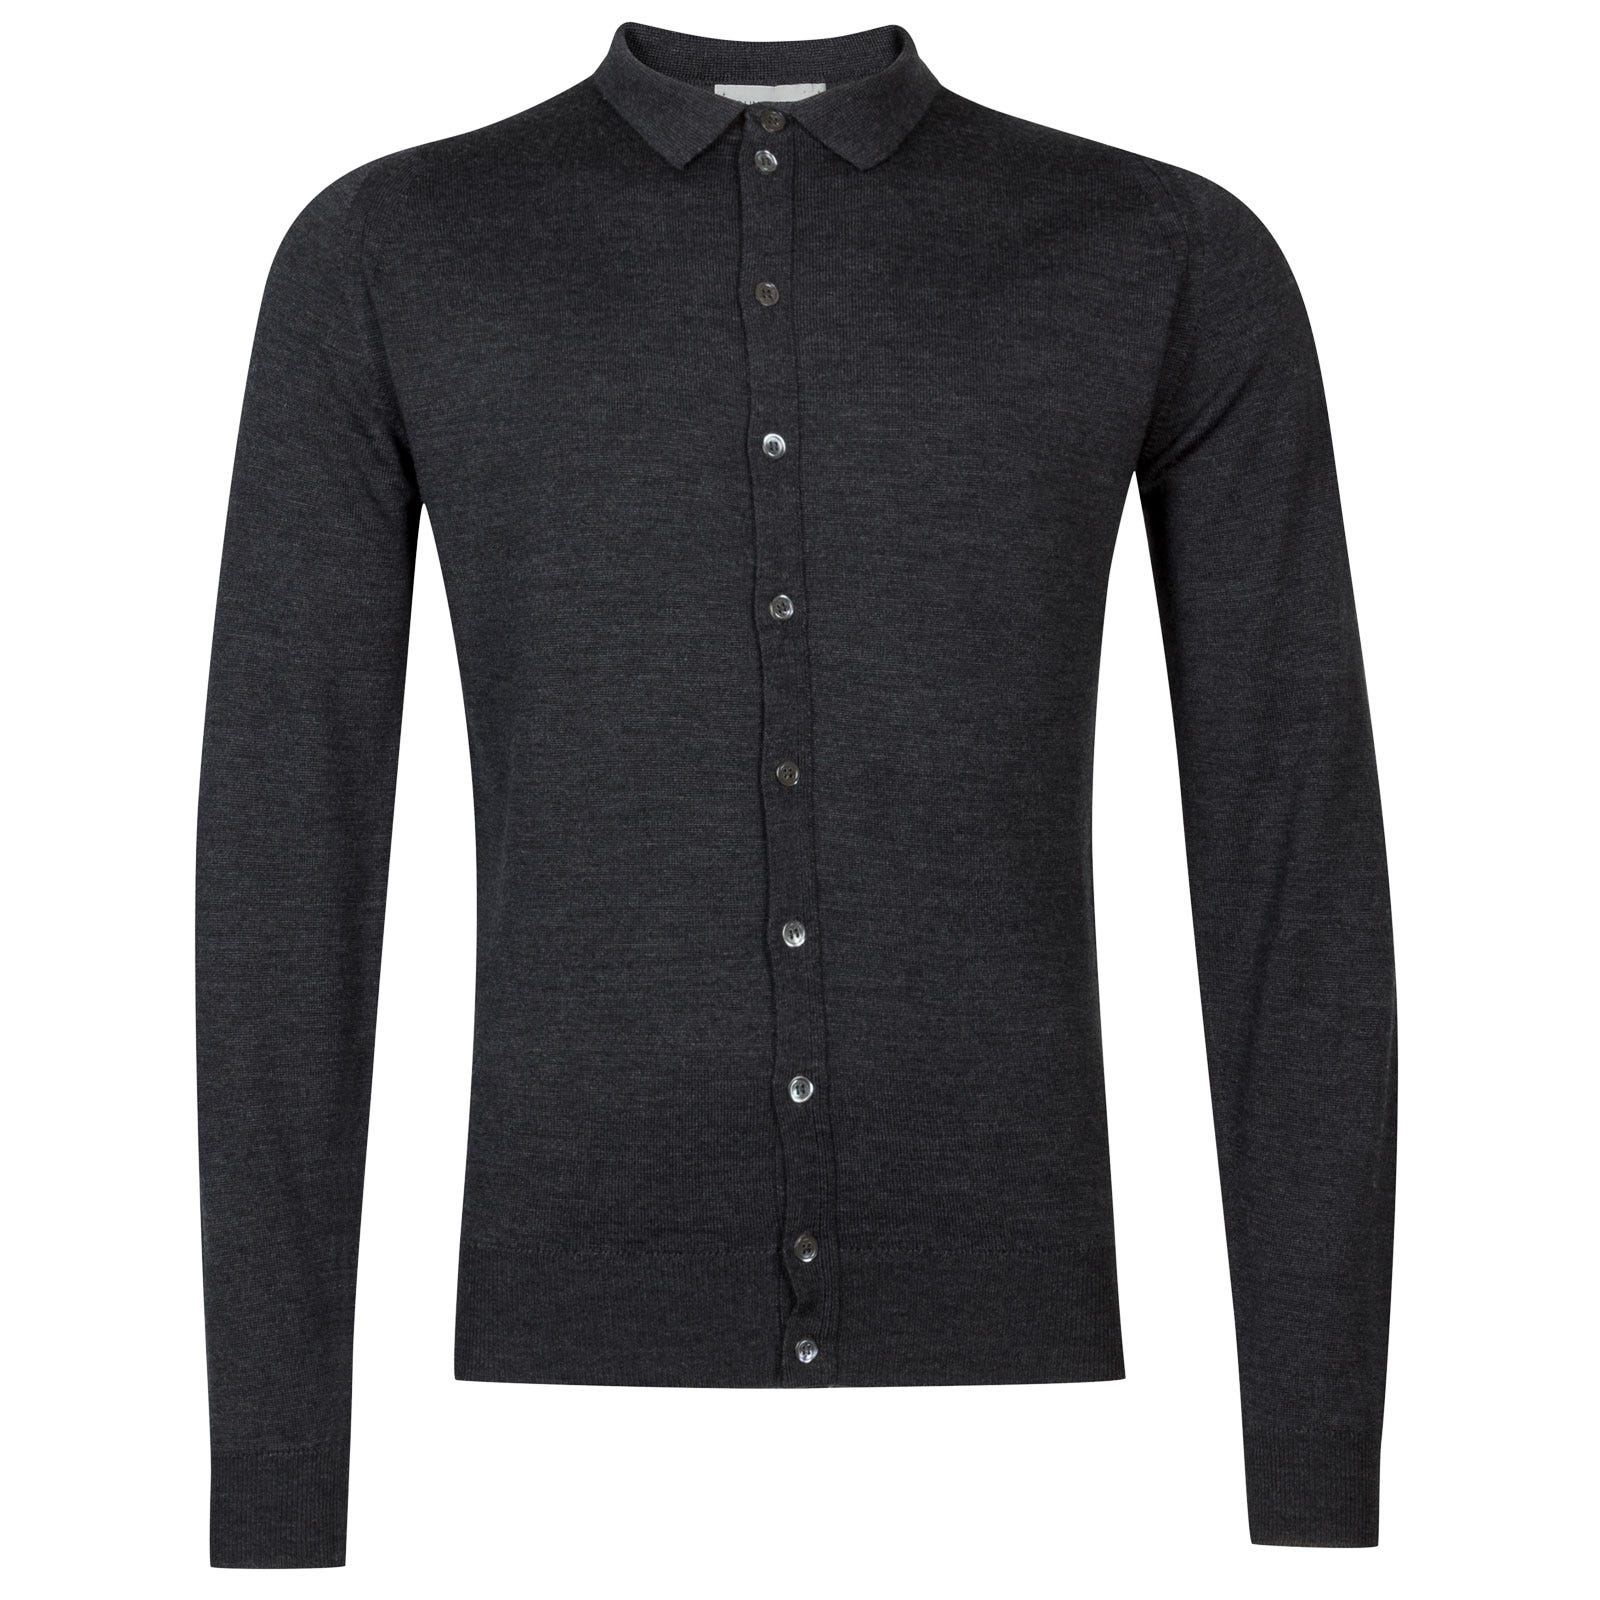 John Smedley parwish Merino Wool Shirt in Charcoal-L